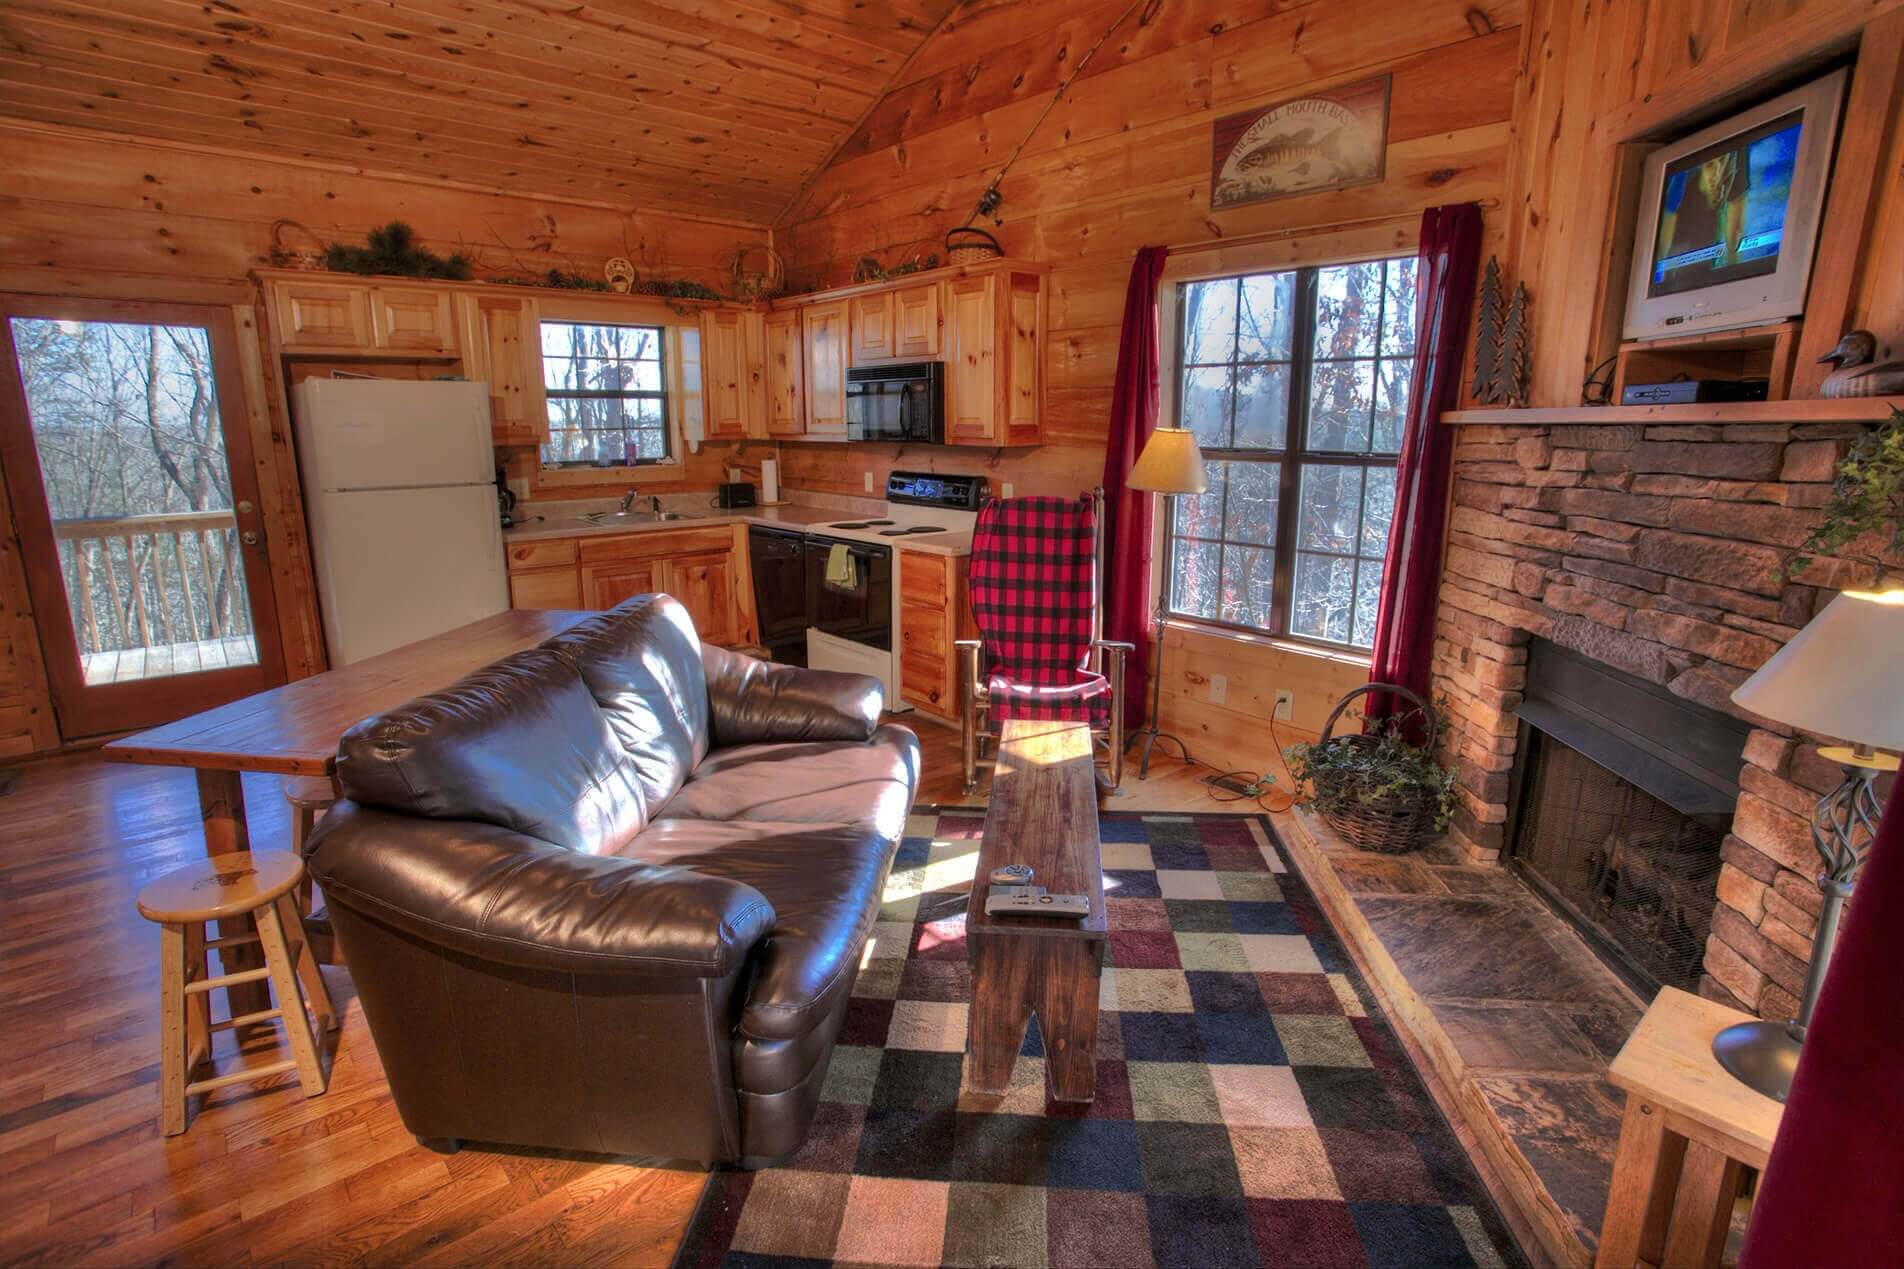 bd vacasa helen cabins cabin rental nacoochee vacation rentals unit ga high in sautee natural